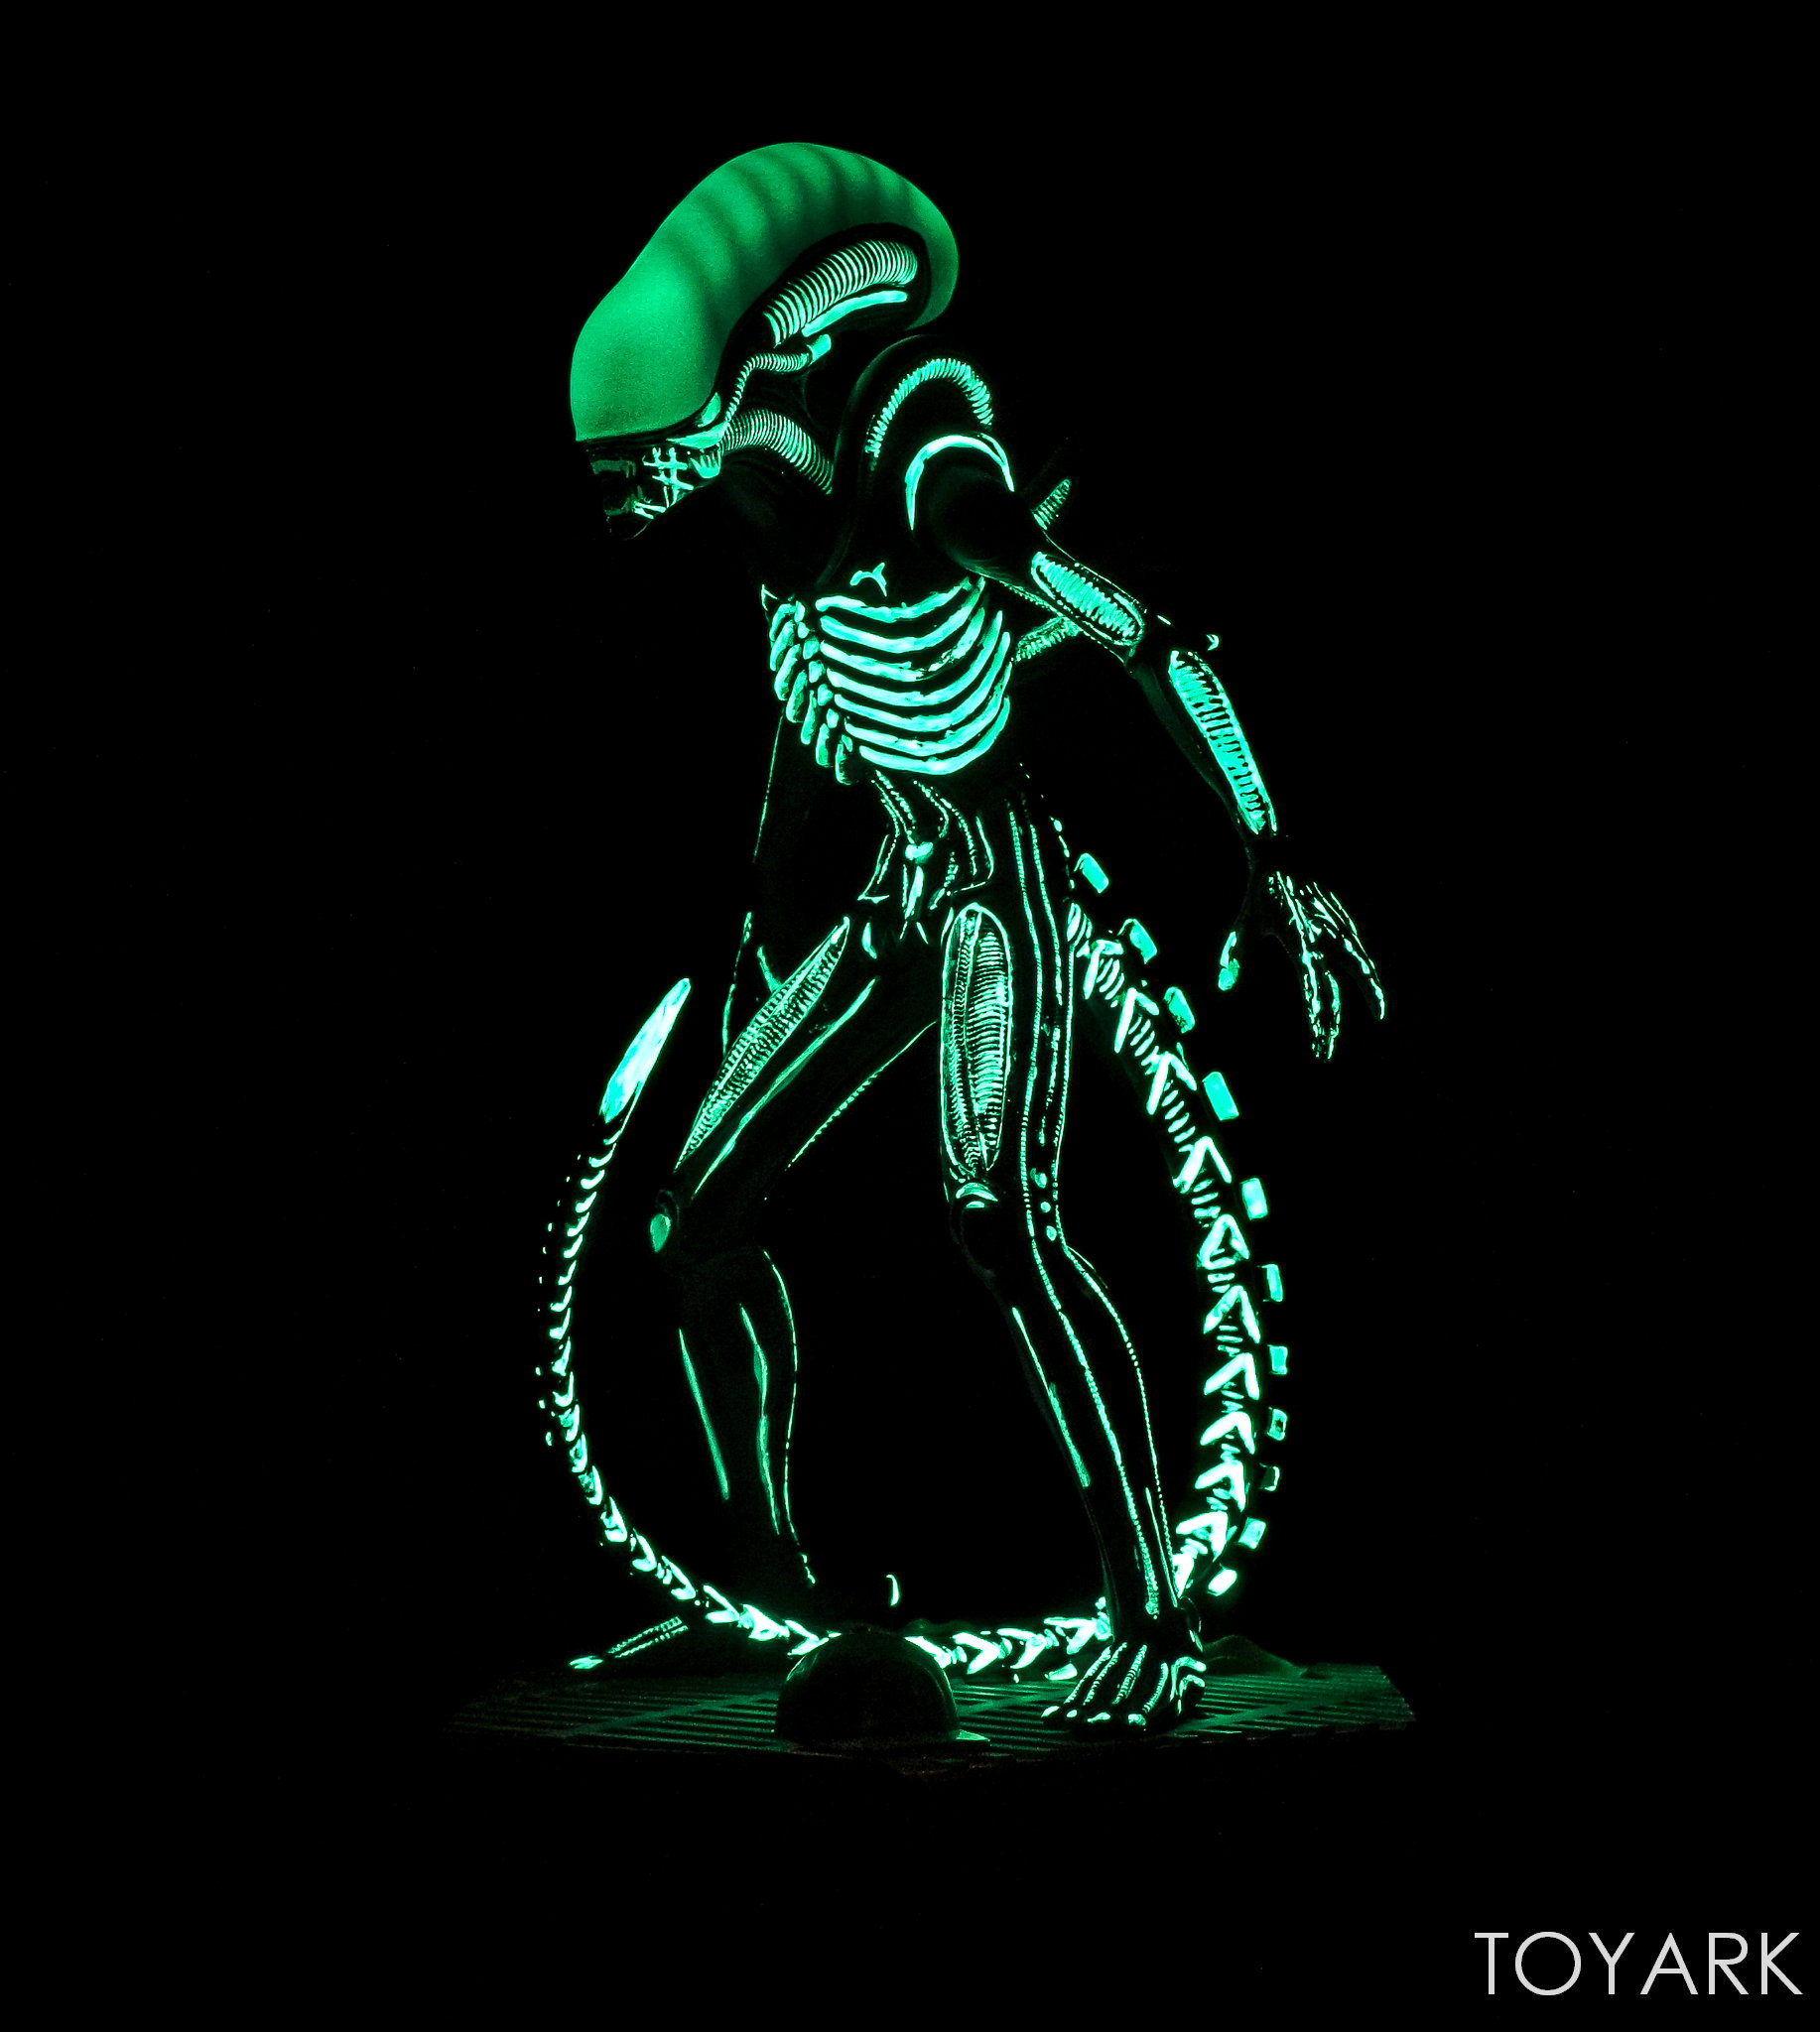 http://news.toyark.com/wp-content/uploads/sites/4/2017/12/Eaglemoss-Glow-in-the-Dark-Alien-Statue-017.jpg